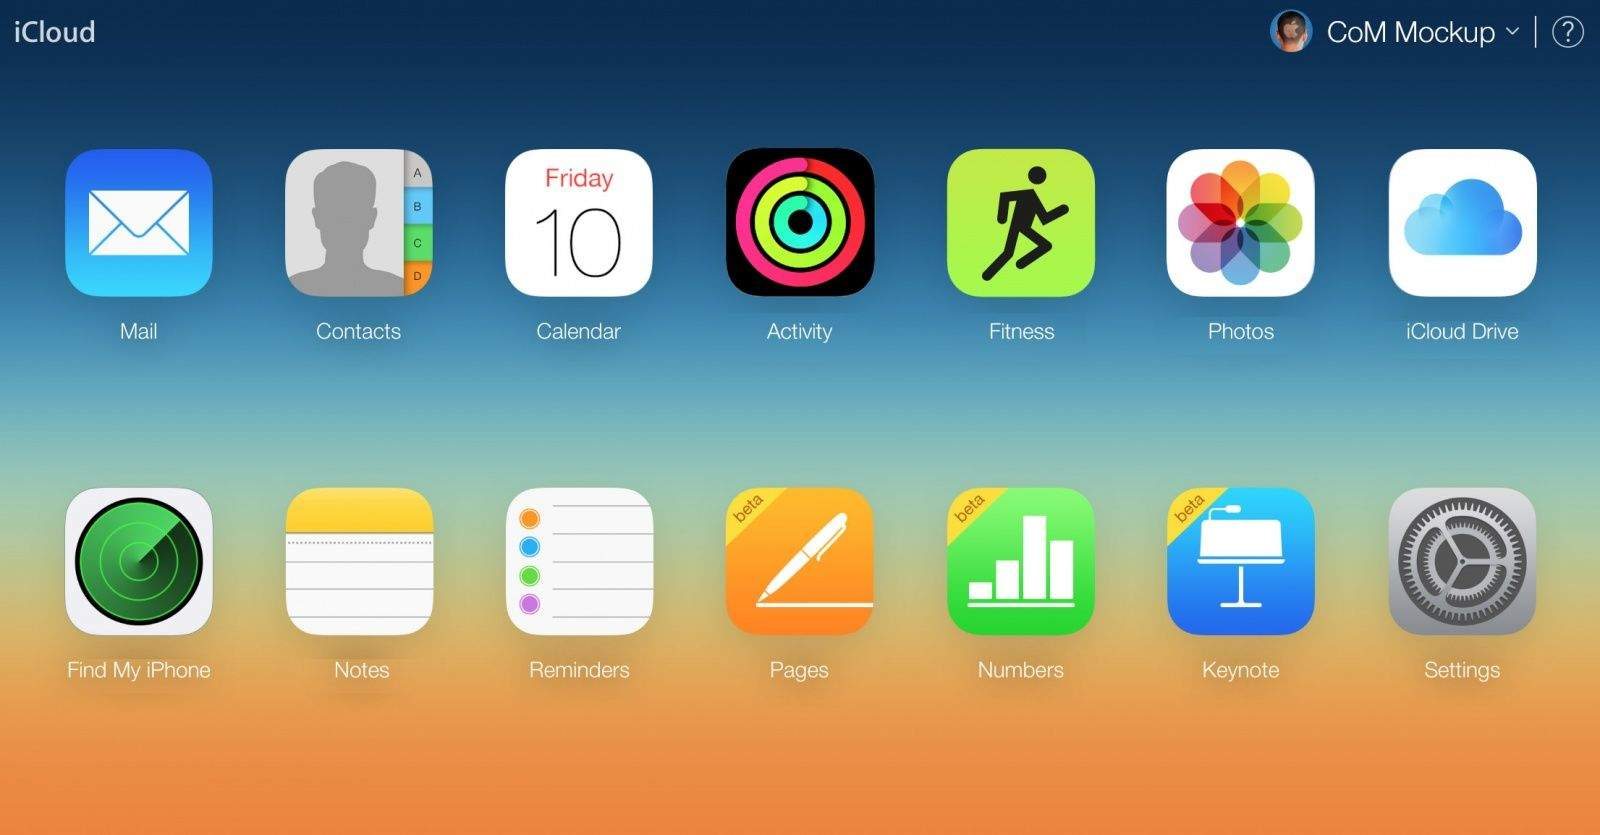 Adding Fitness and Activity to iCloud.com would make it easier to browse your workout data.